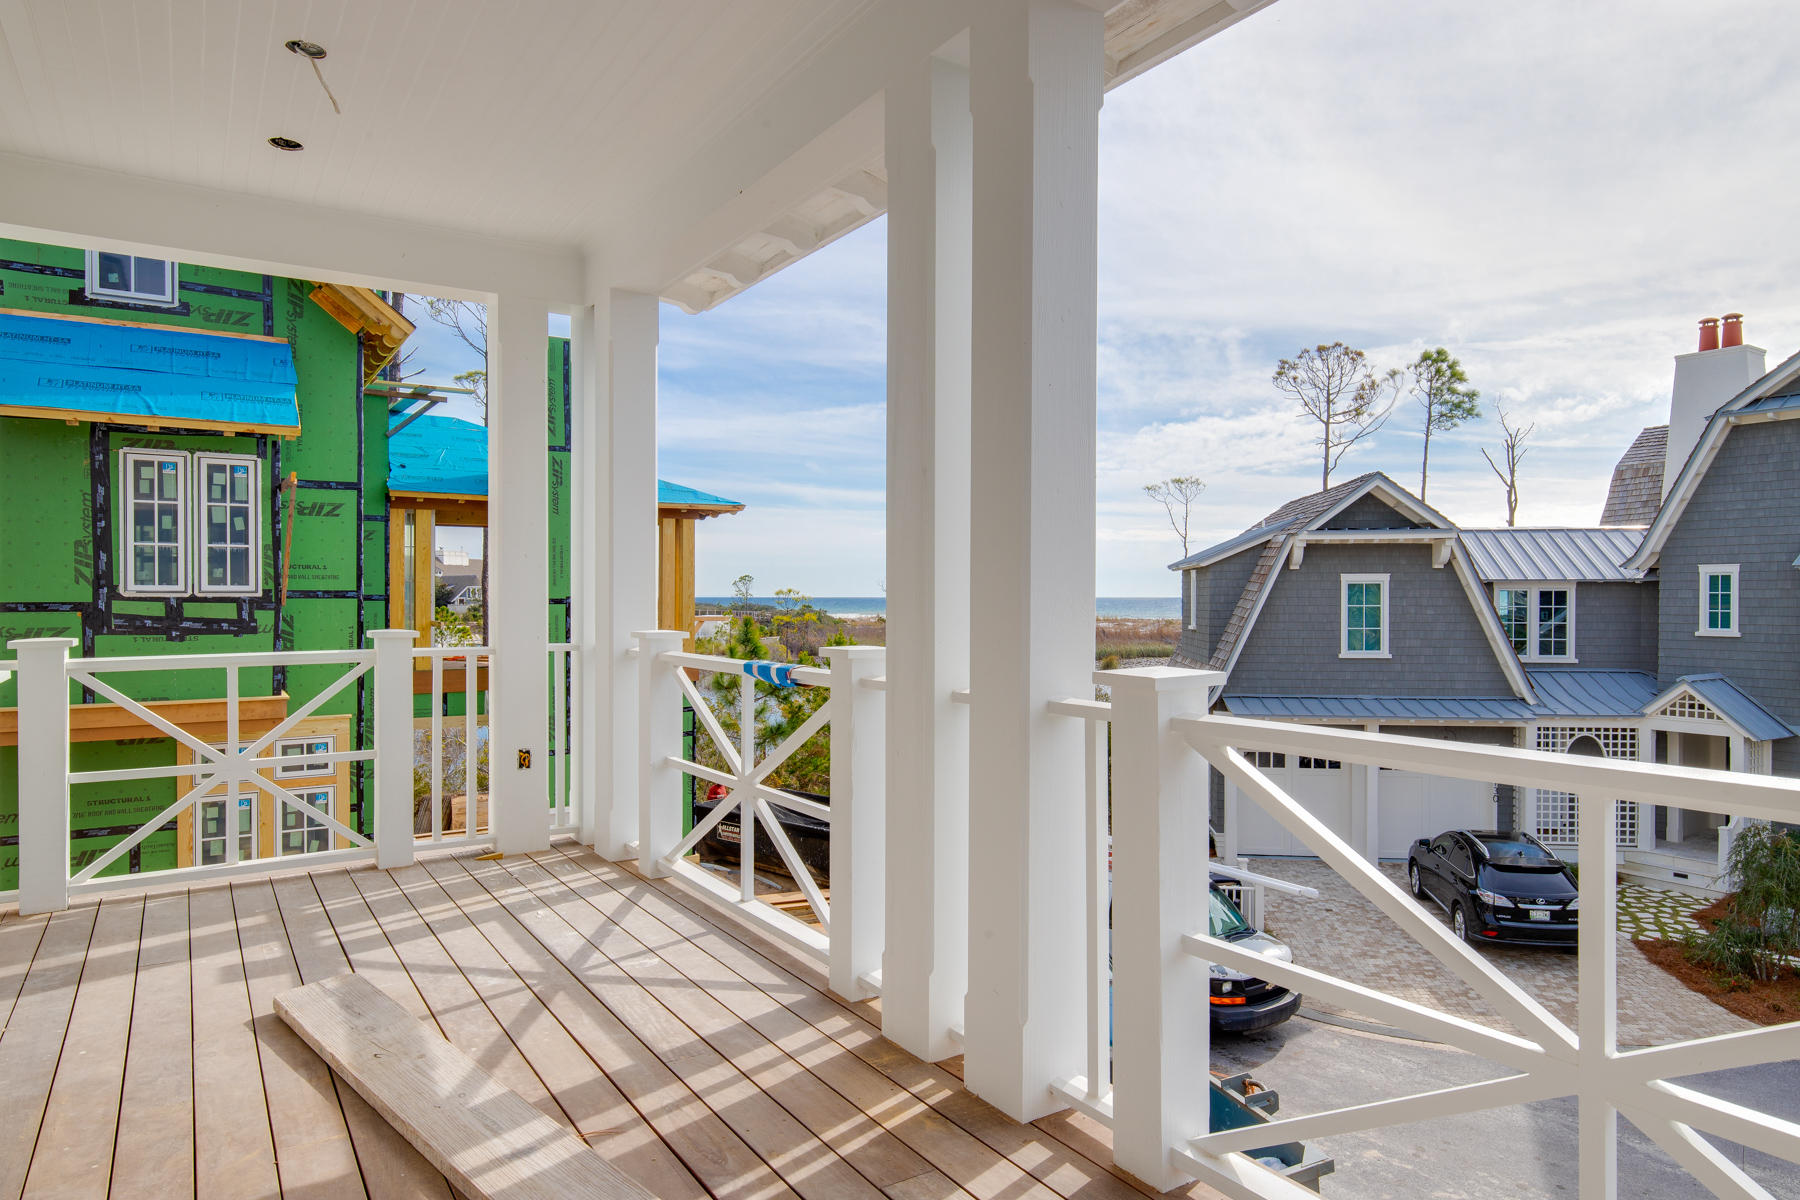 Lot 50 Compass Point,Watersound,Florida 32461,6 Bedrooms Bedrooms,6 BathroomsBathrooms,Detached single family,Compass Point,20131126143817002353000000